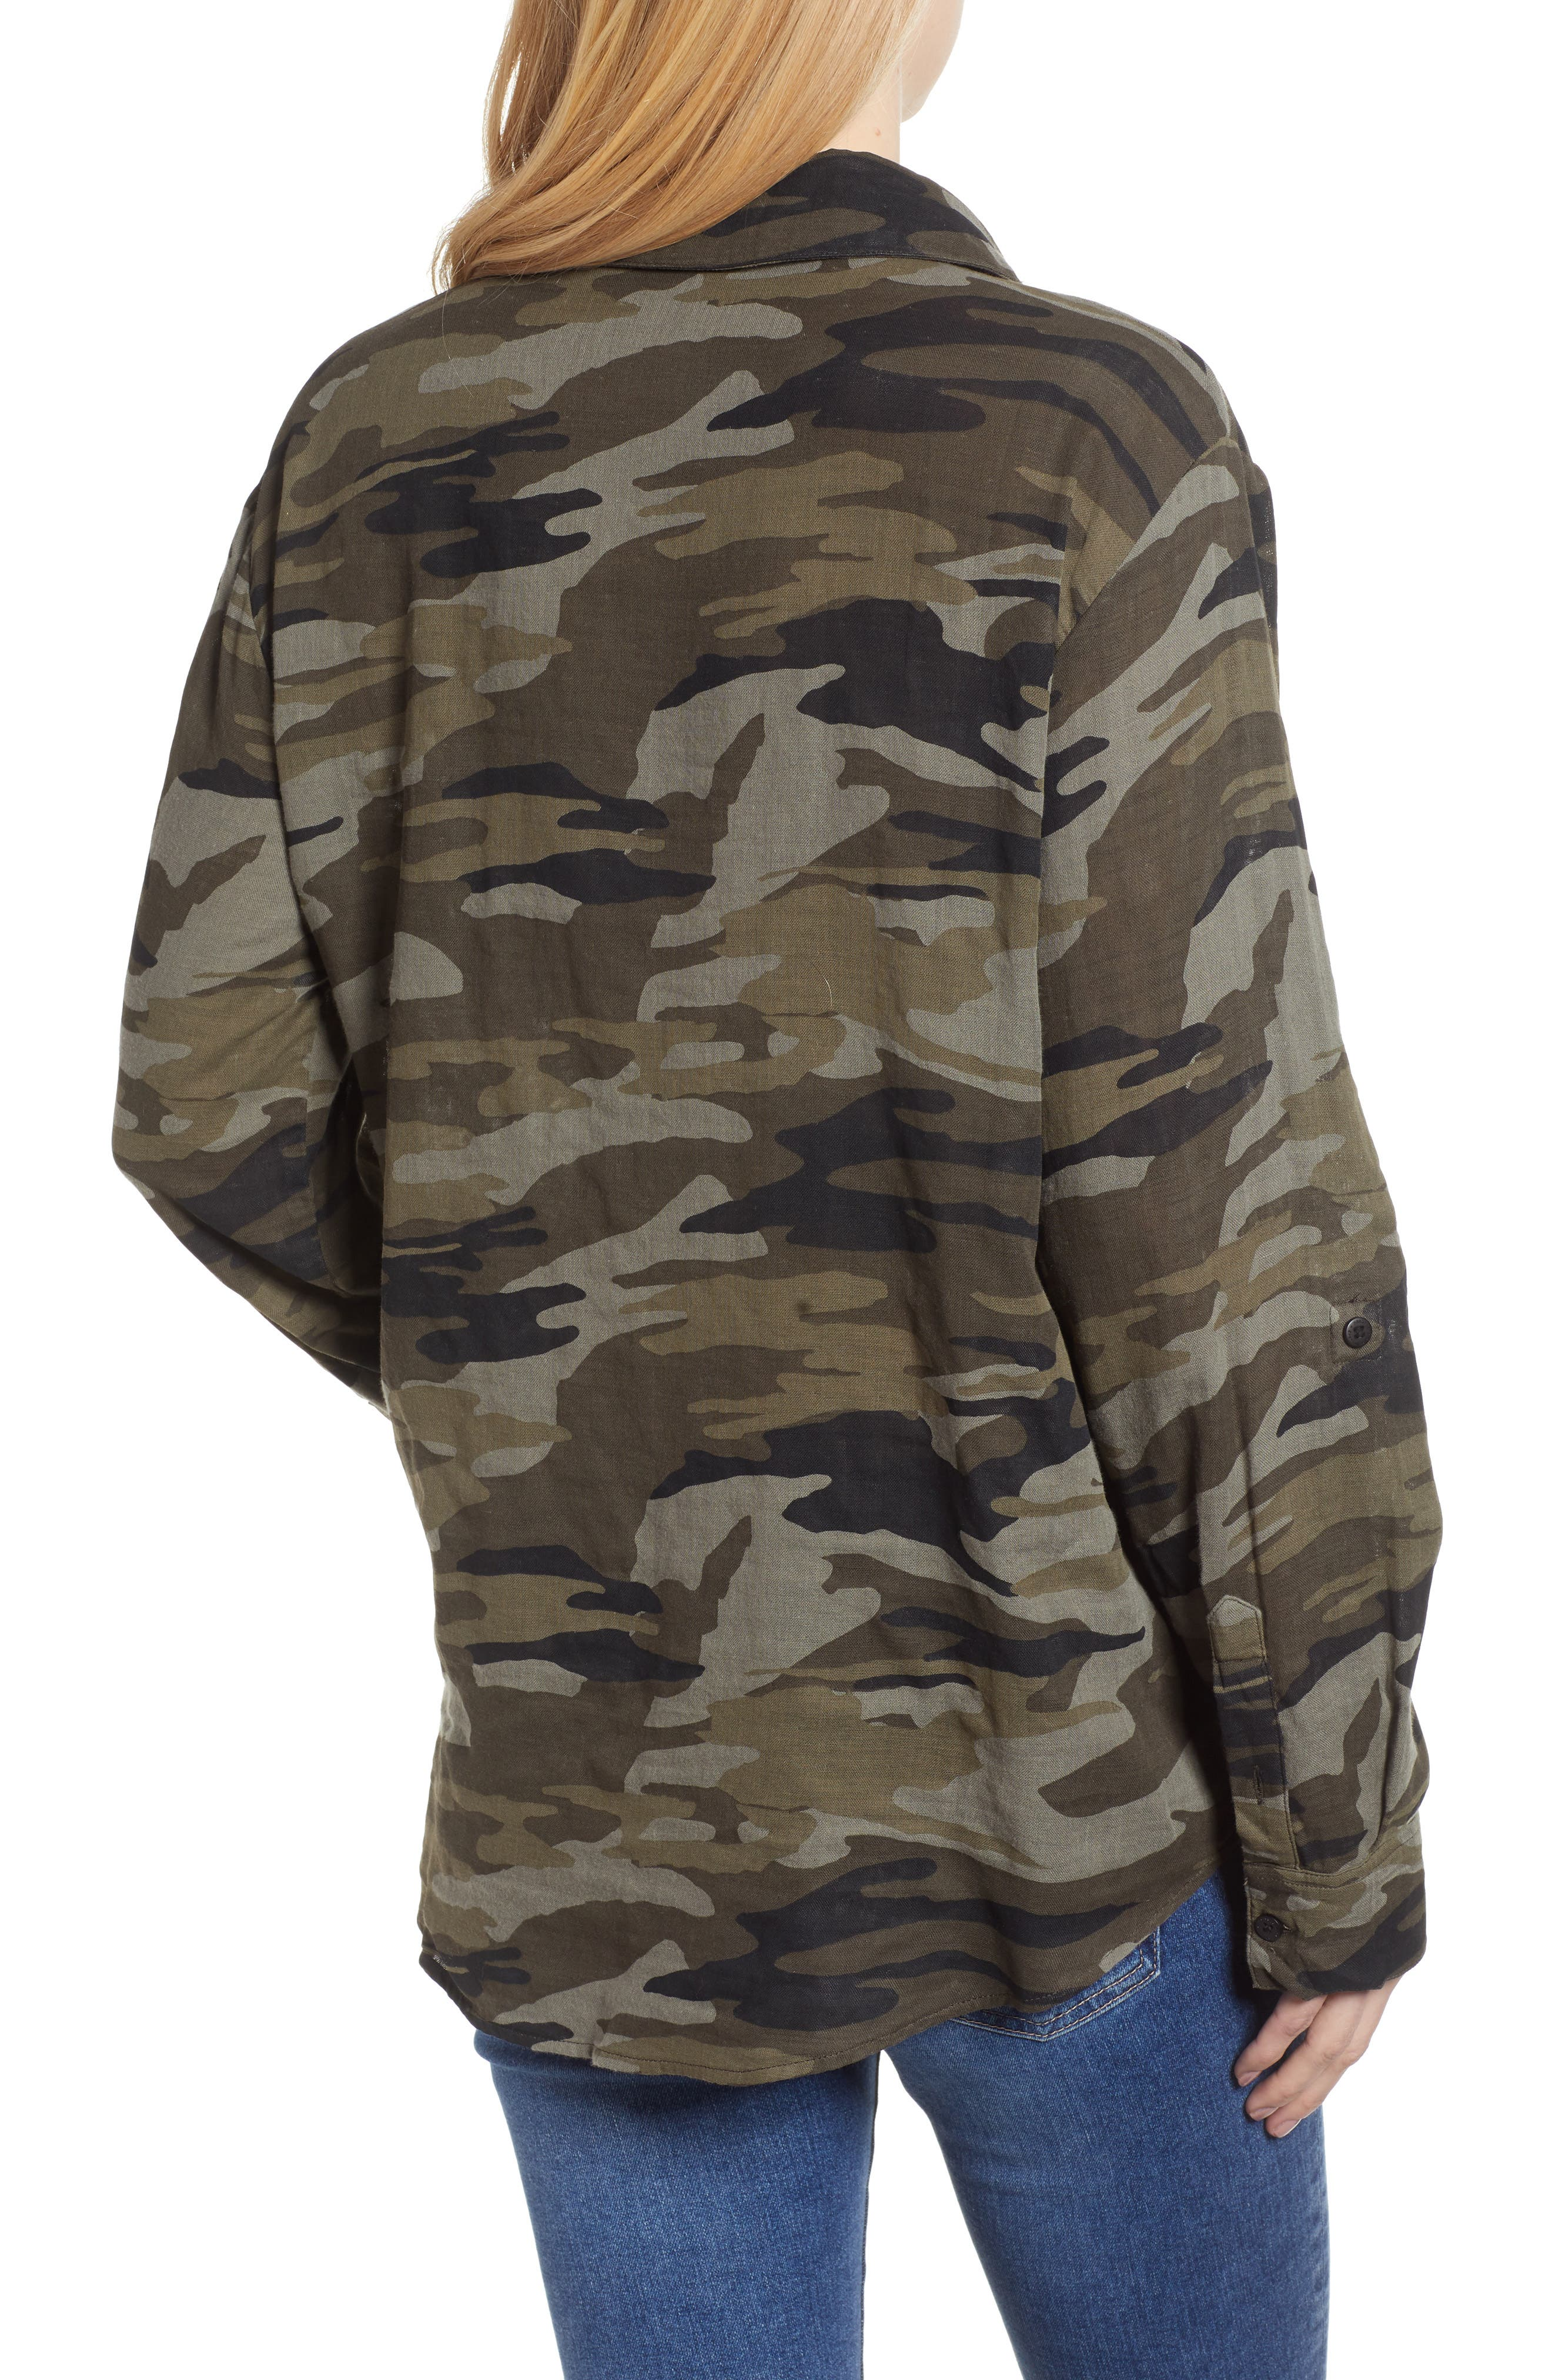 SANCTUARY, Steady Boyfriend Camo Shirt, Alternate thumbnail 2, color, GARDEN CAMO